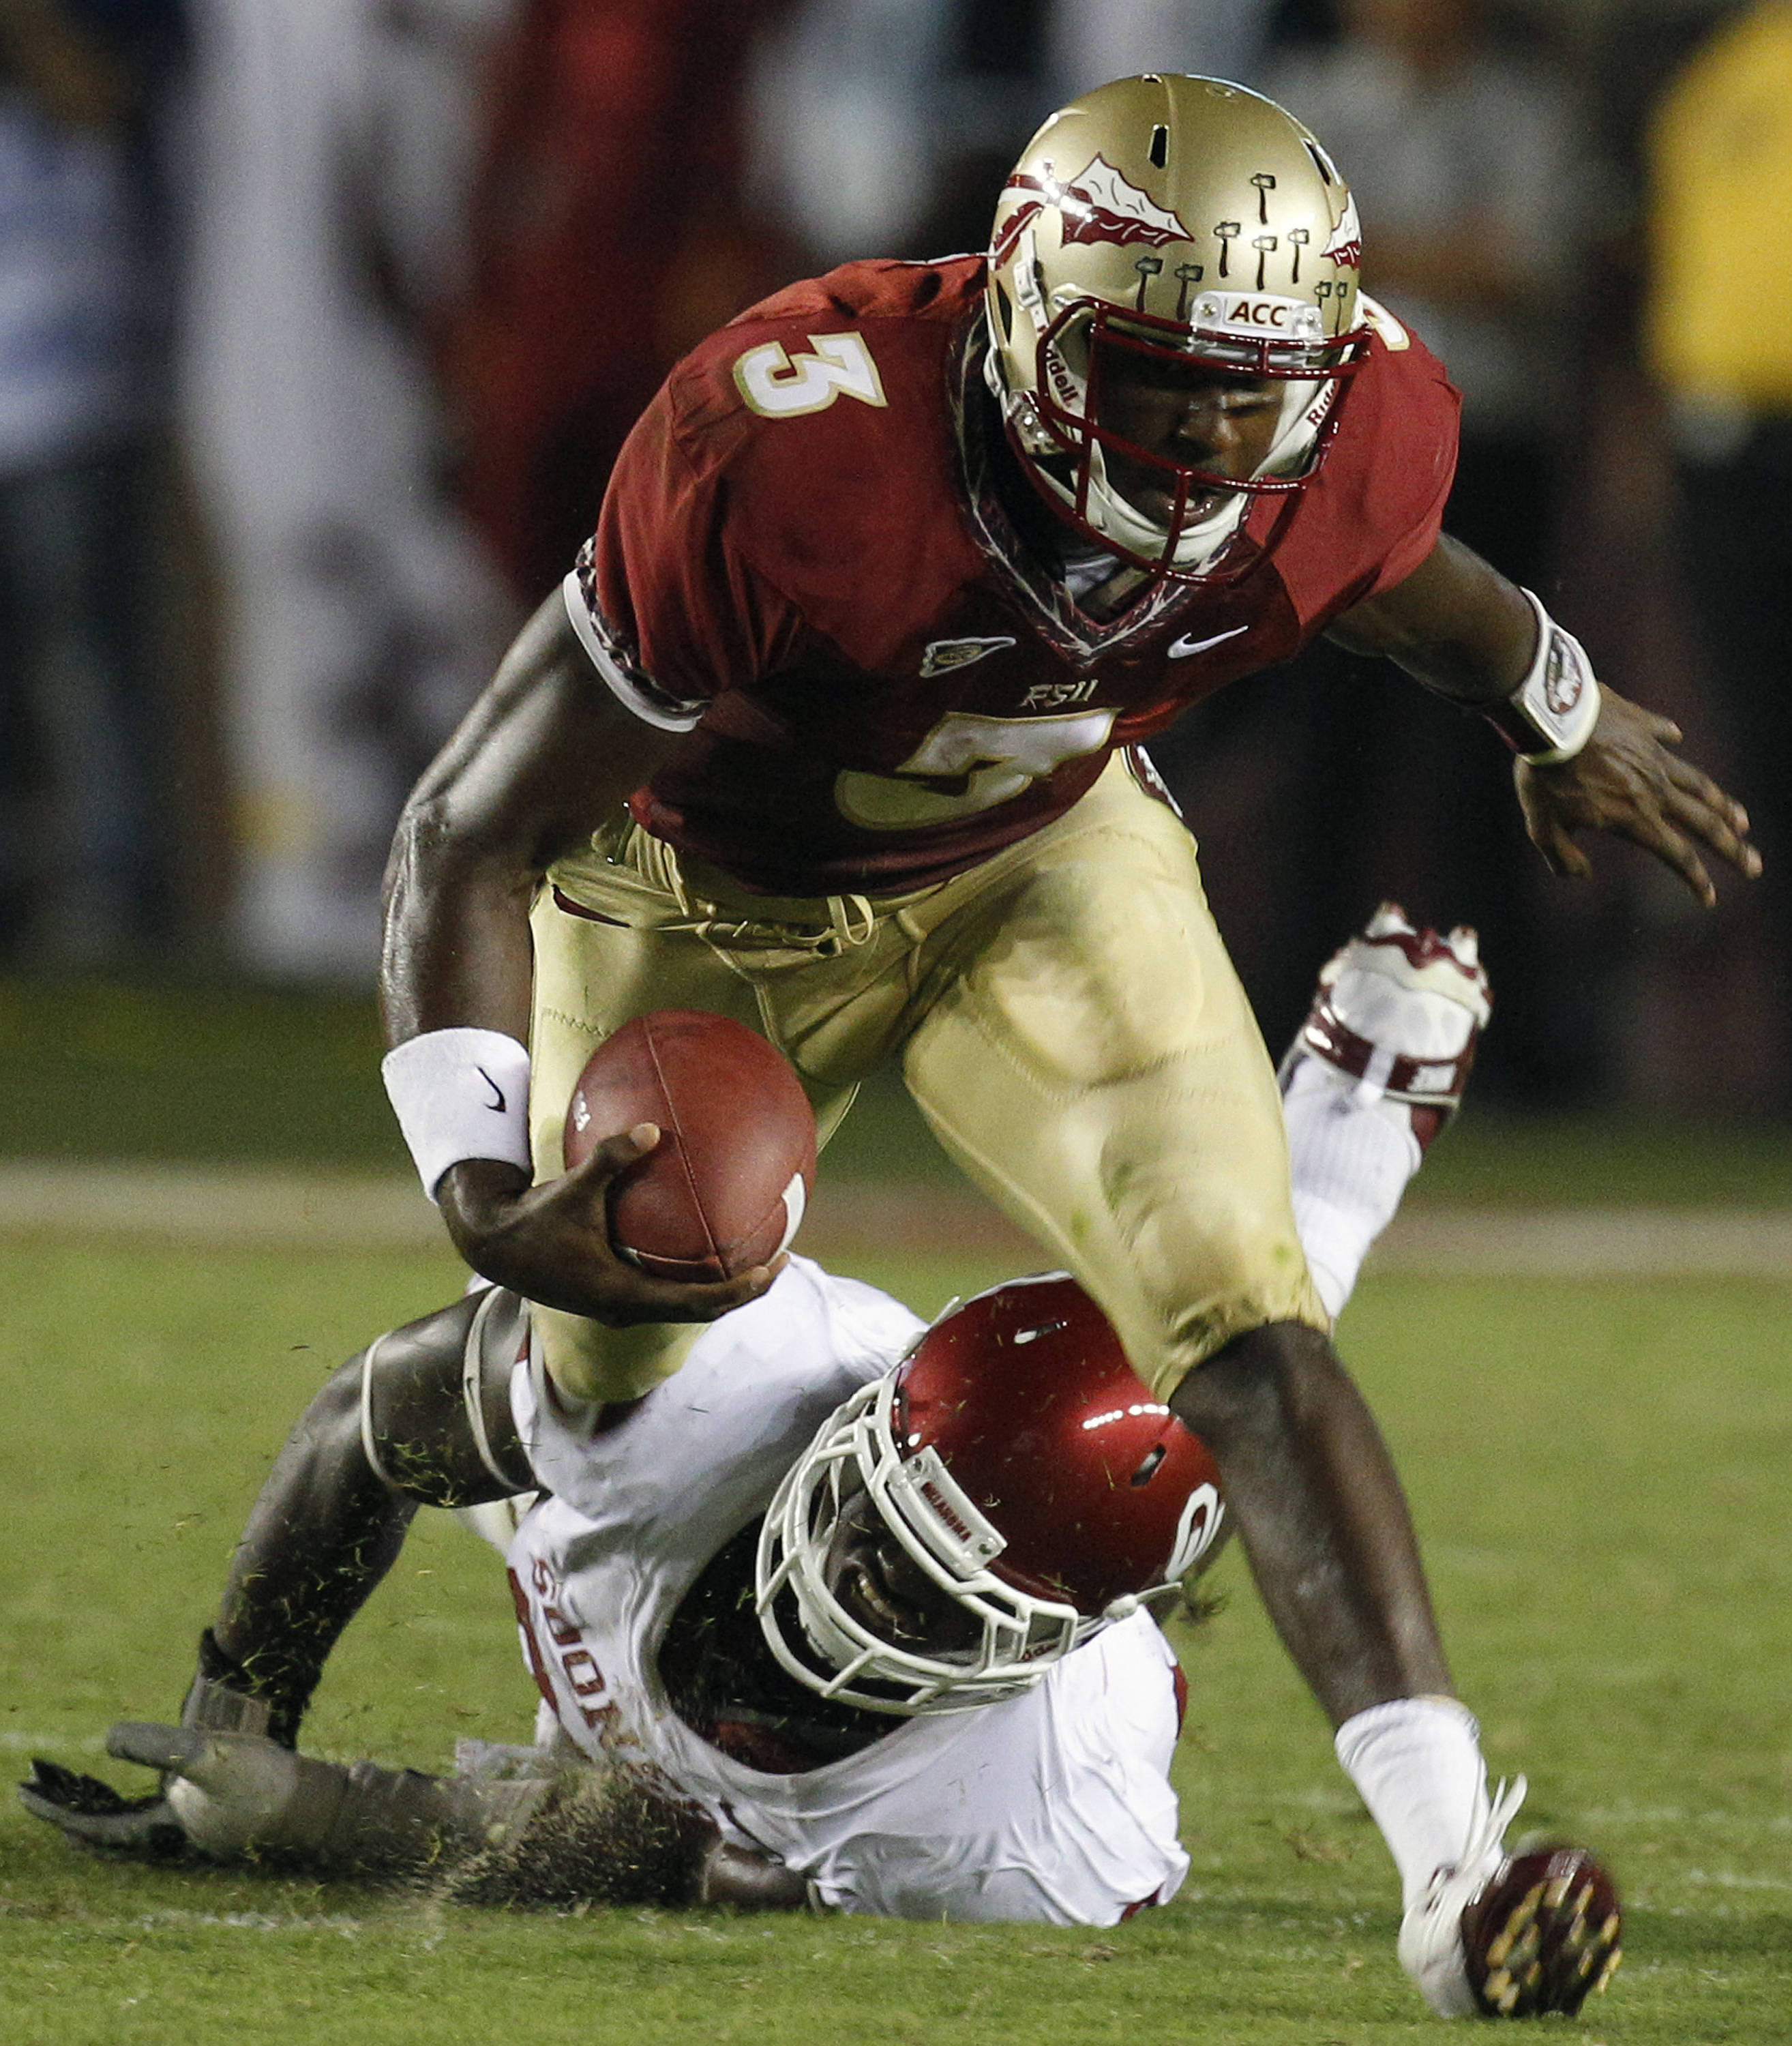 Florida State quarterback EJ Manuel (3) is tripped up by Oklahoma defensive end David King (90) on a second quarter run. (AP Photo/Chris O'Meara)